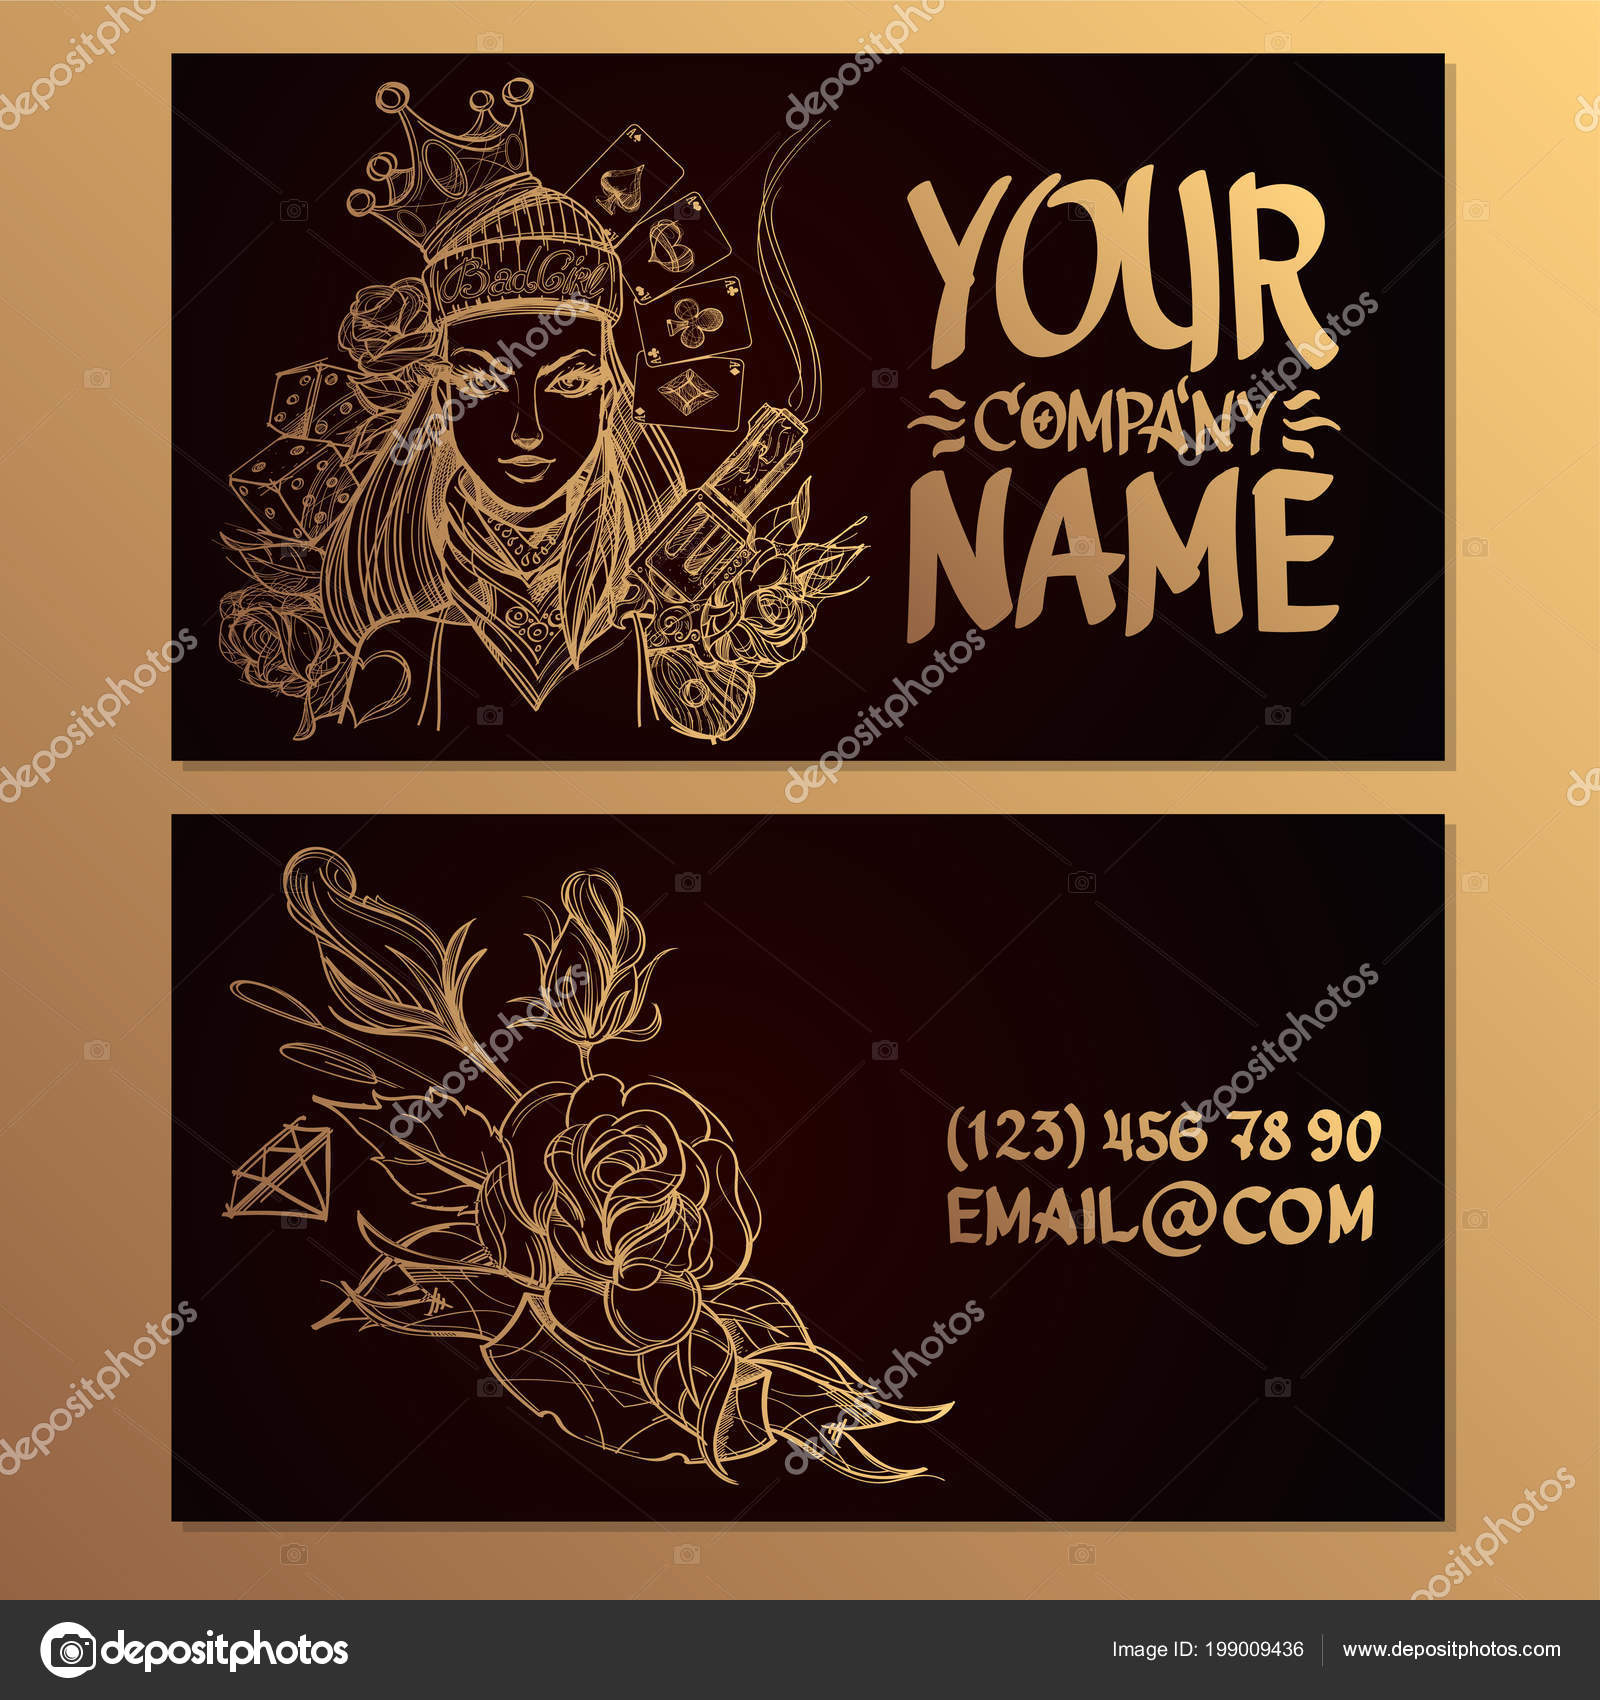 Cards Image Woman Gun Flower Templates Creating Business Cards